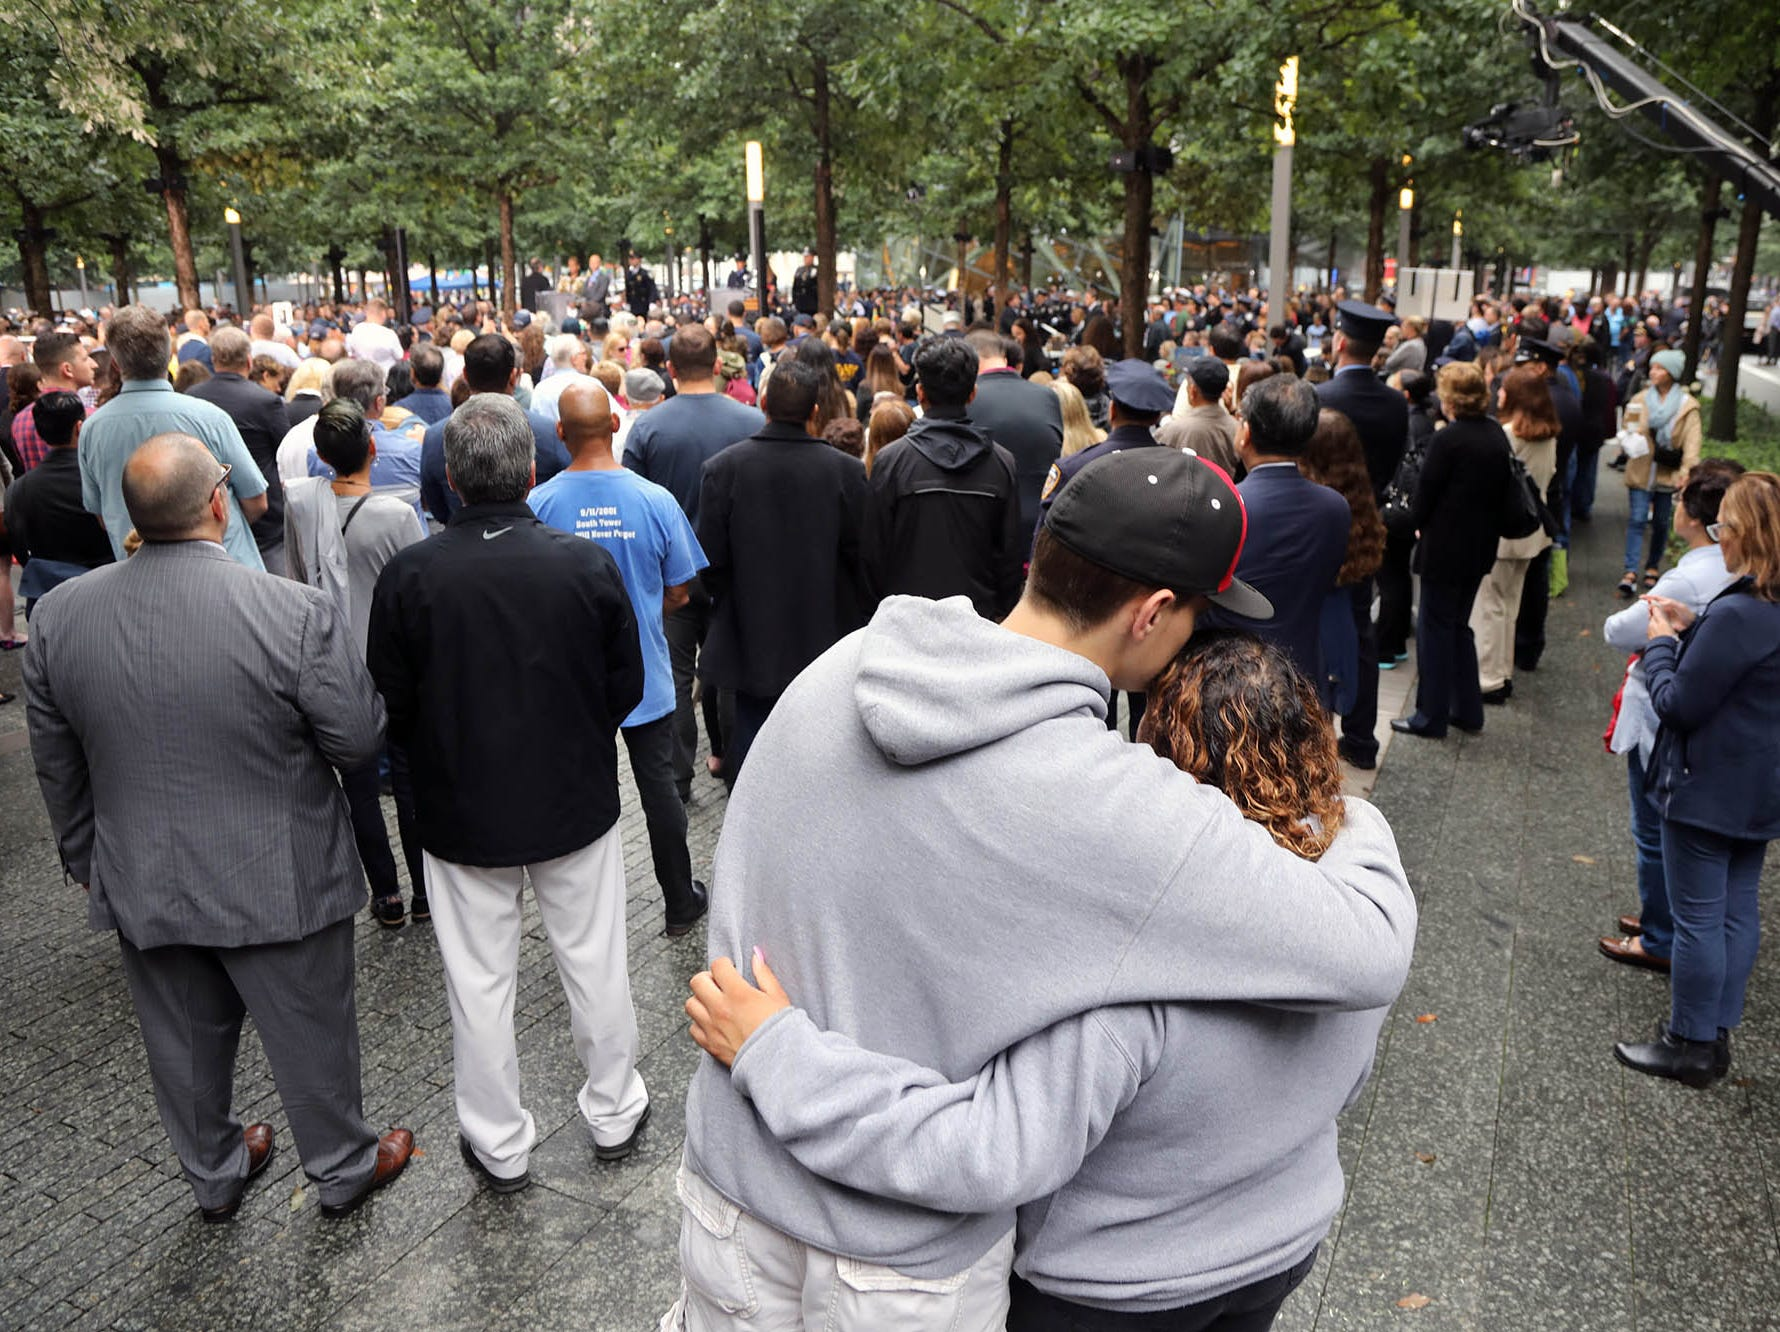 A couple hug as they listen to the names of those who perished on 911. This was during ceremonies at the National September 11 Memorial observing the 17th anniversary of the attacks that killed people in Manhattan, the Pentagon, Flight 93 and honoring those who died in the 1993 World Trade Center bombing.